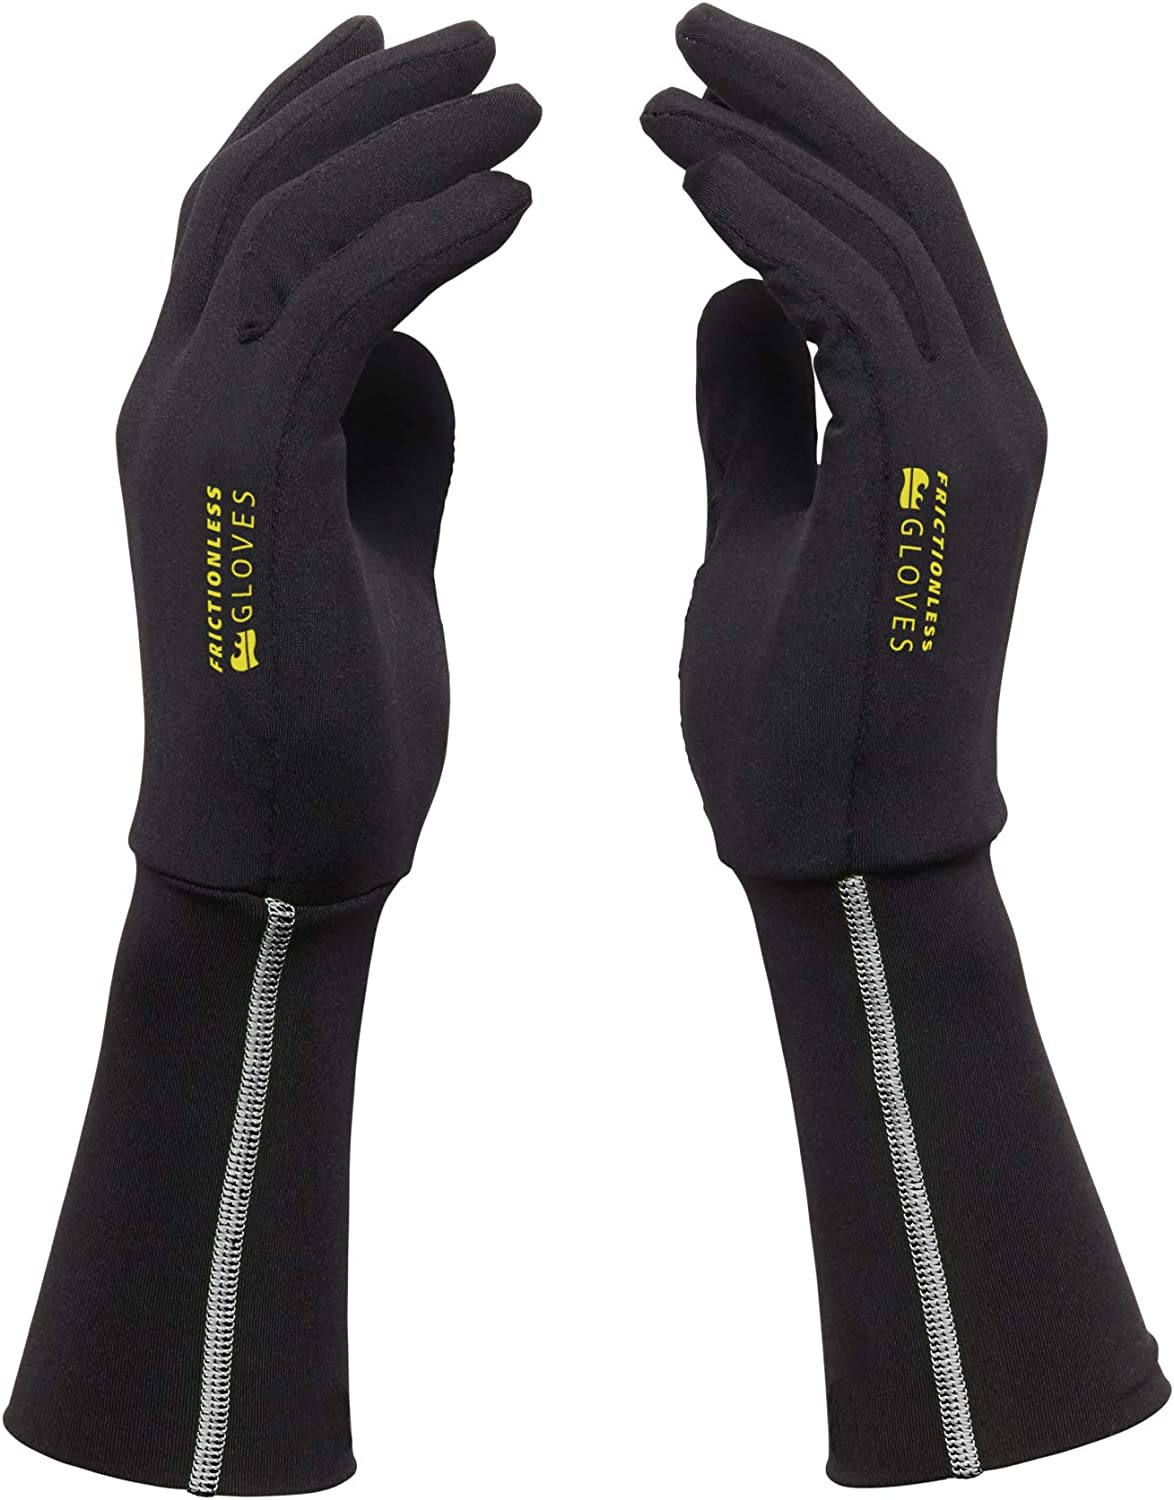 WORN Frictionless Wetsuit Glove | Kevlar Stitched | Ultra Thin | Perfect Base